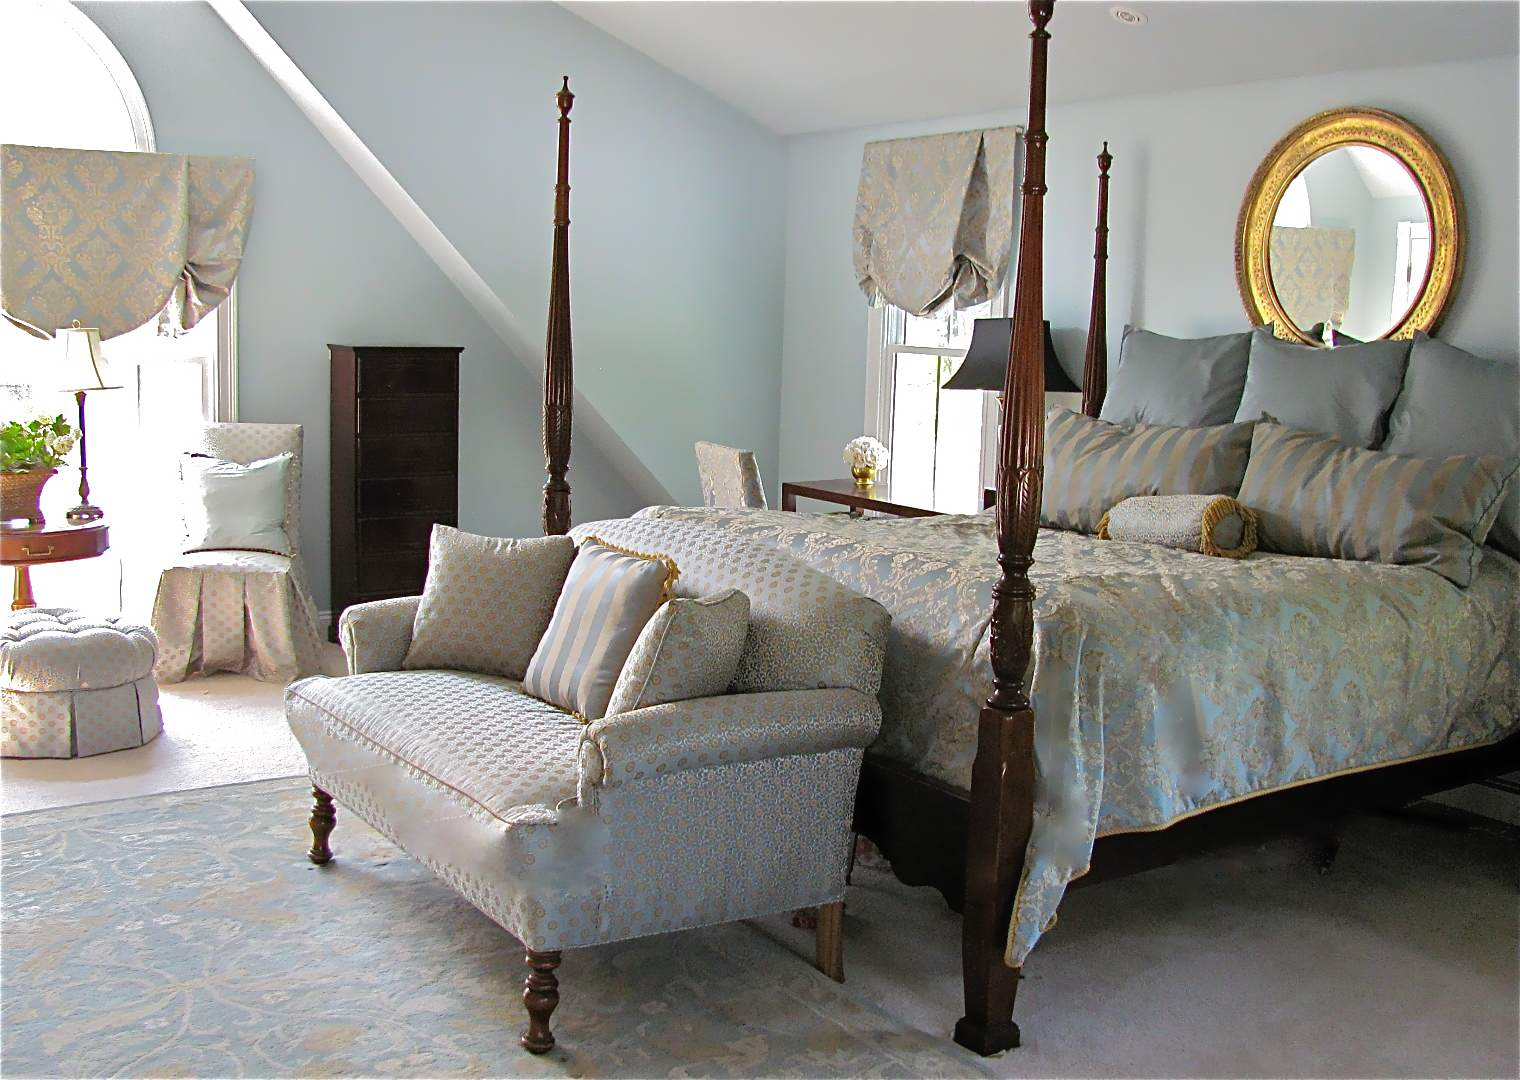 Cozy Bedroom Ideas Plus Area Rug And Balloon Shades Also Bench With Tiffany  Blue Paint For Traditional Four Poster Bed Foot Of The